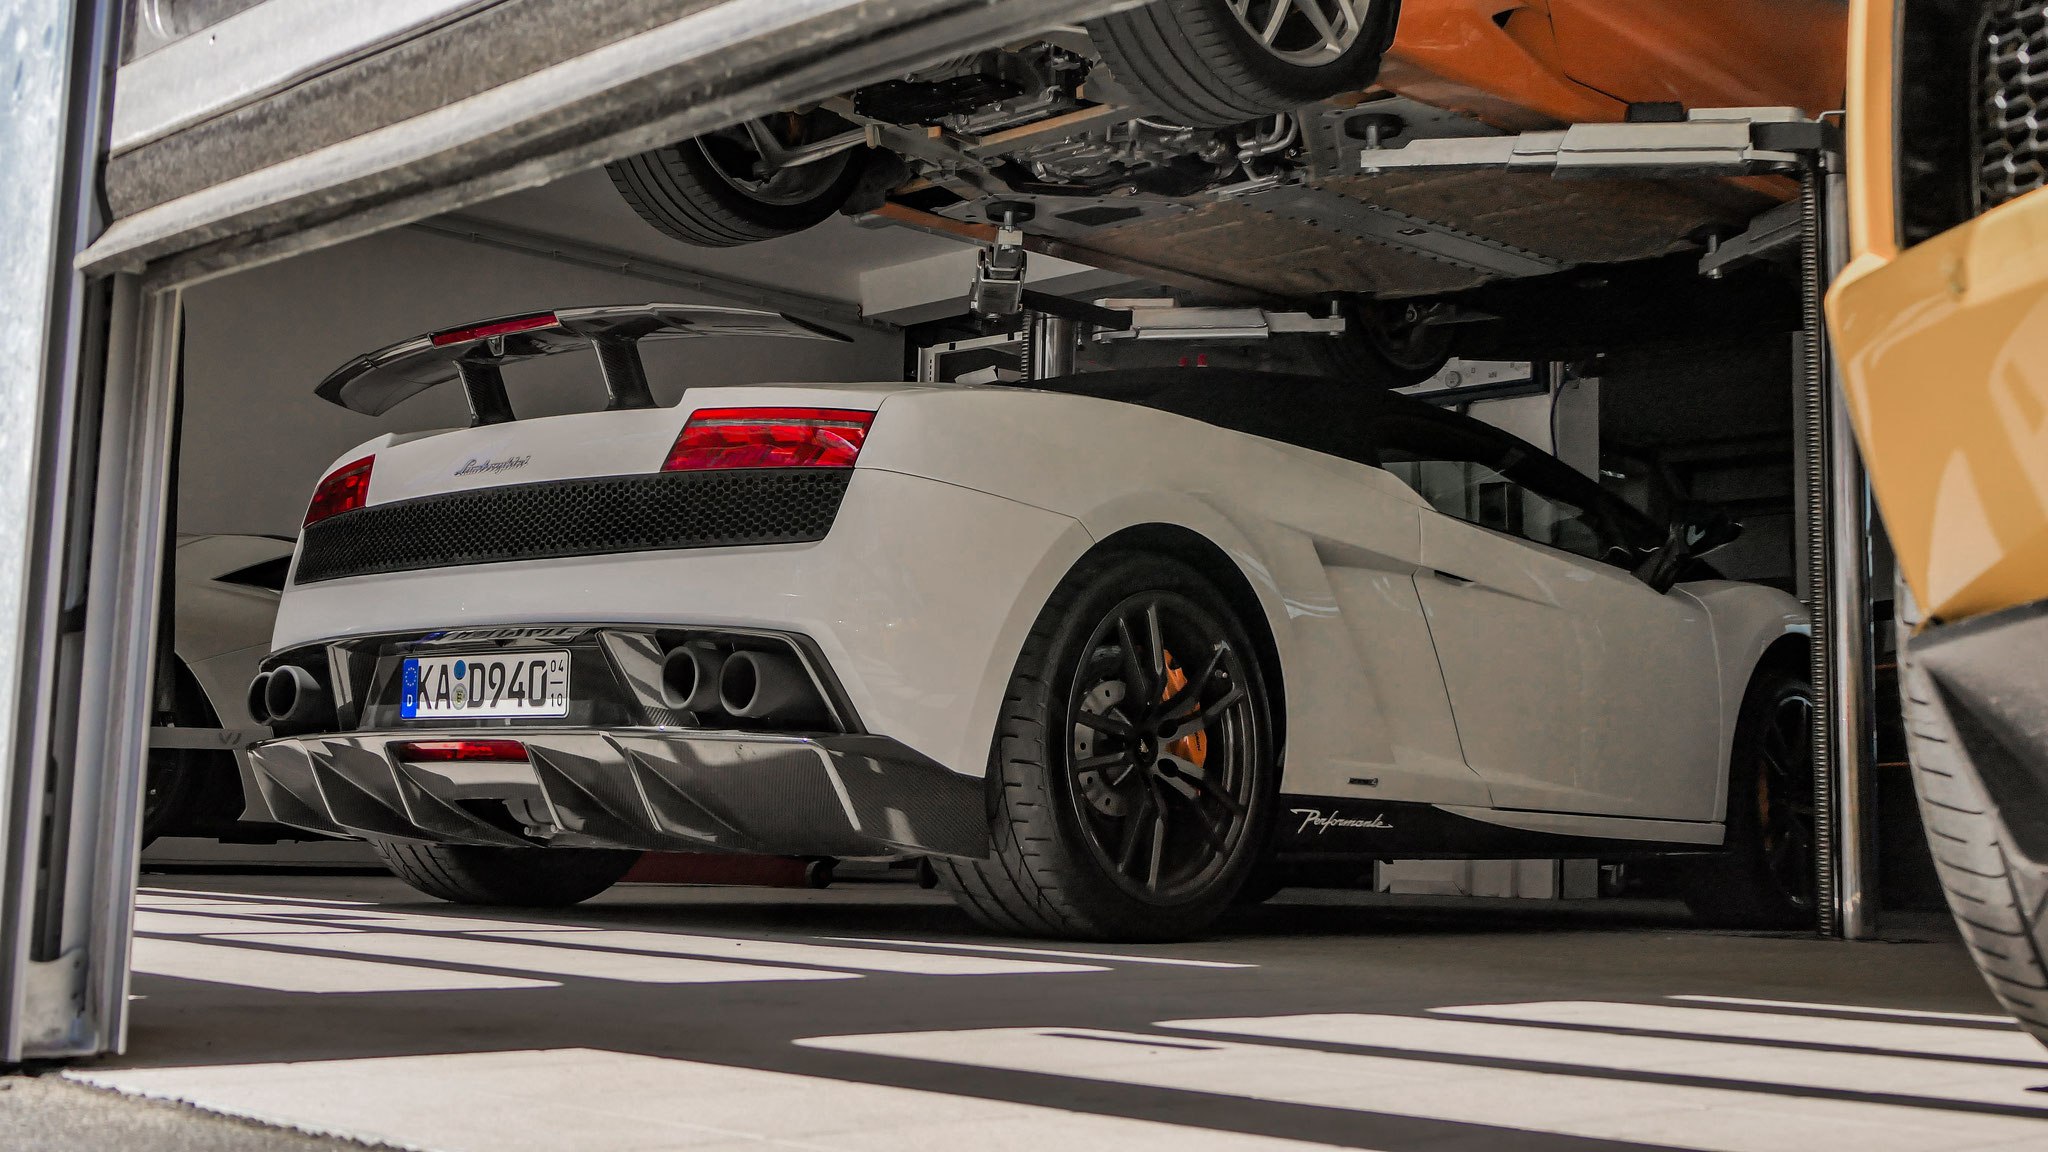 Lamborghini Gallardo LP 570-4 Performante - KA-D-940